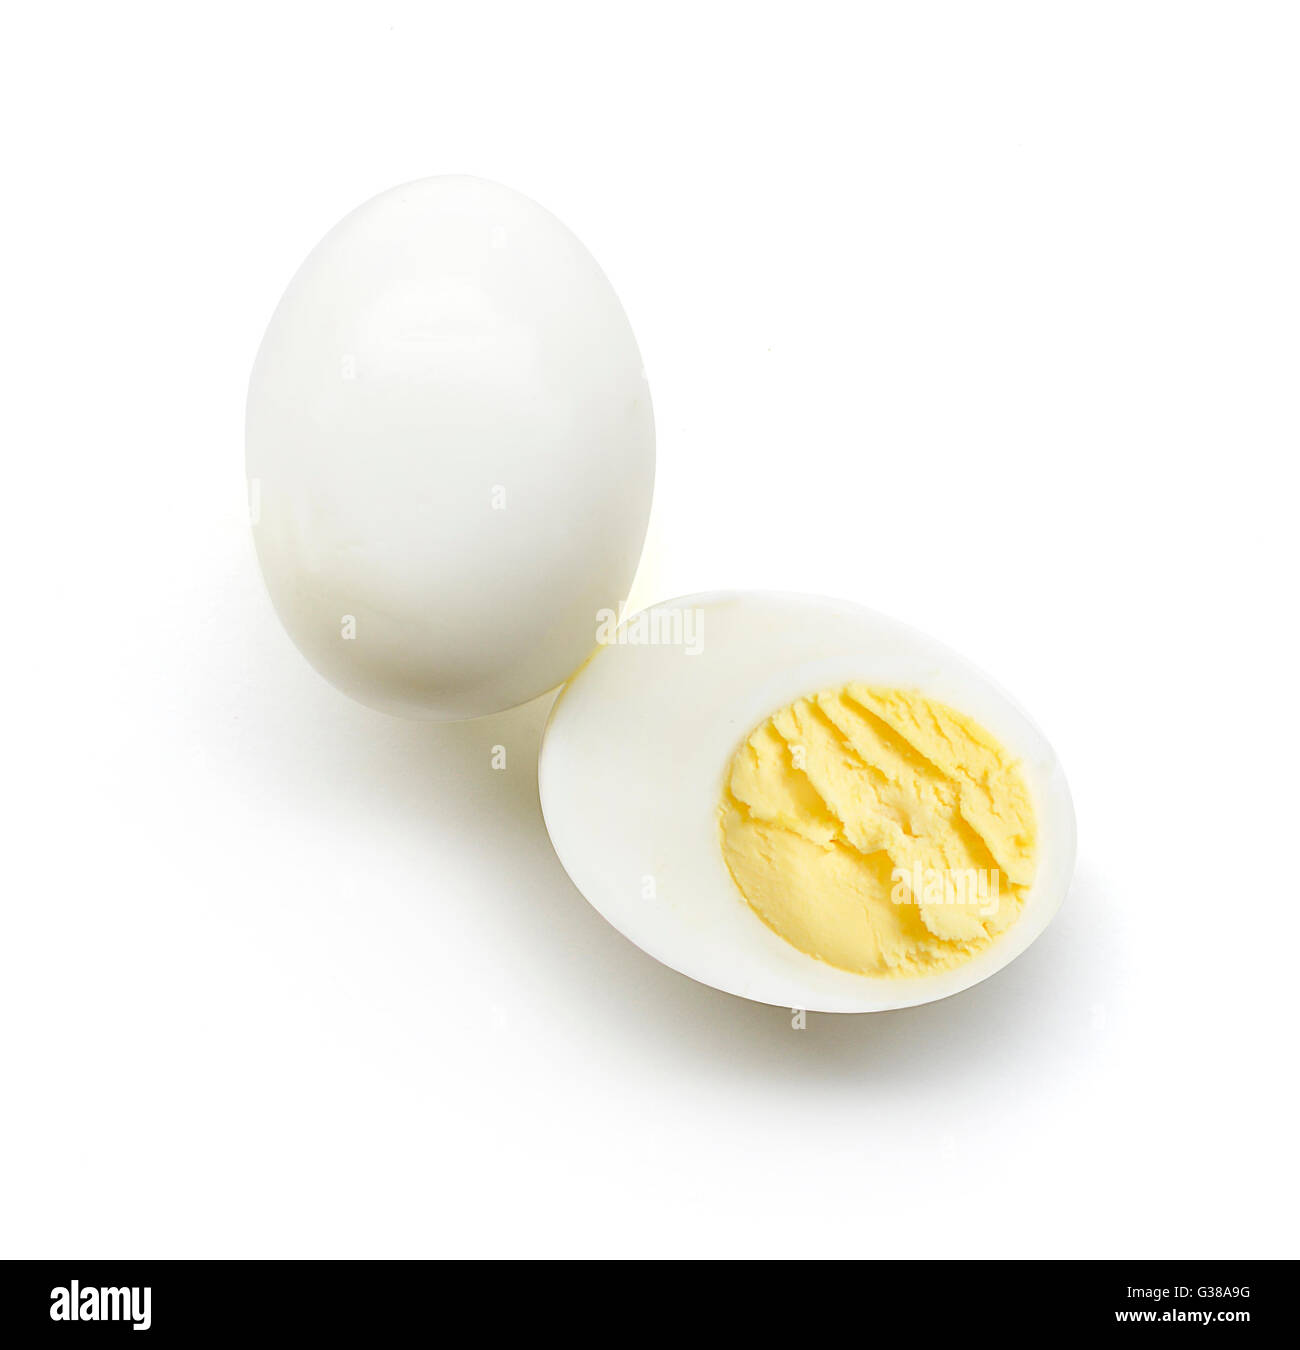 Hard boiled egg - Stock Image